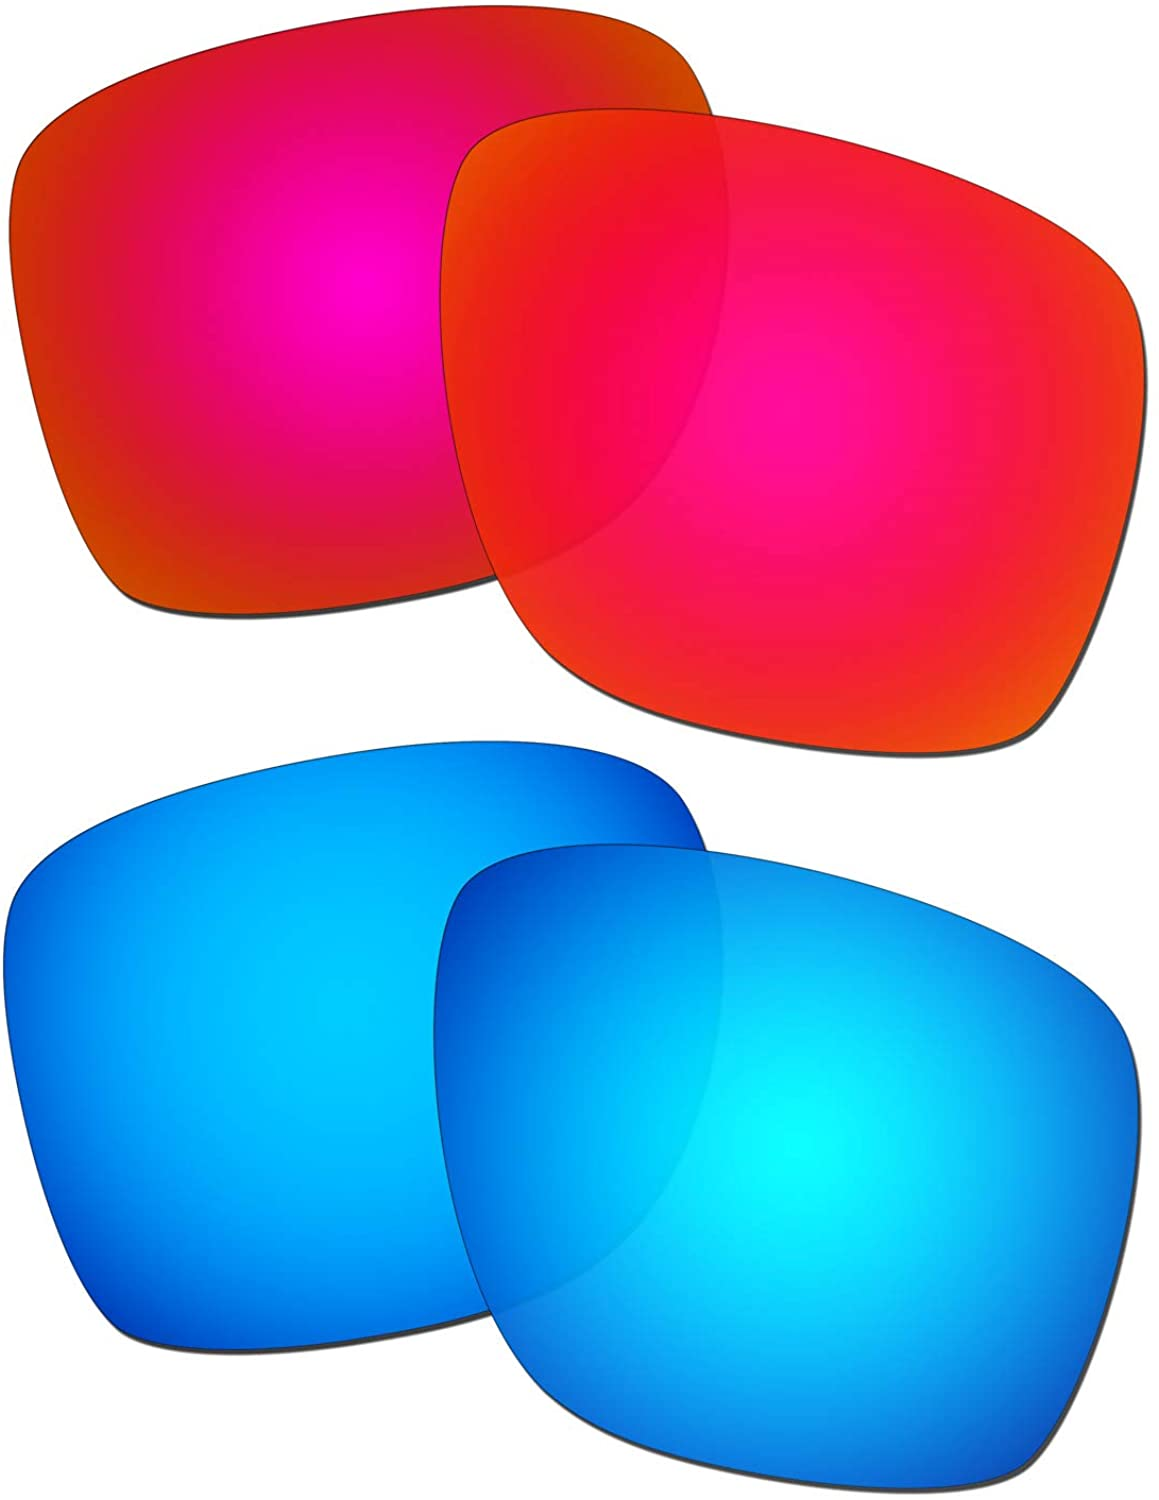 HKUCO Reinforce Replacement Lenses For Oakley Sliver XL Red/Blue Sunglasses